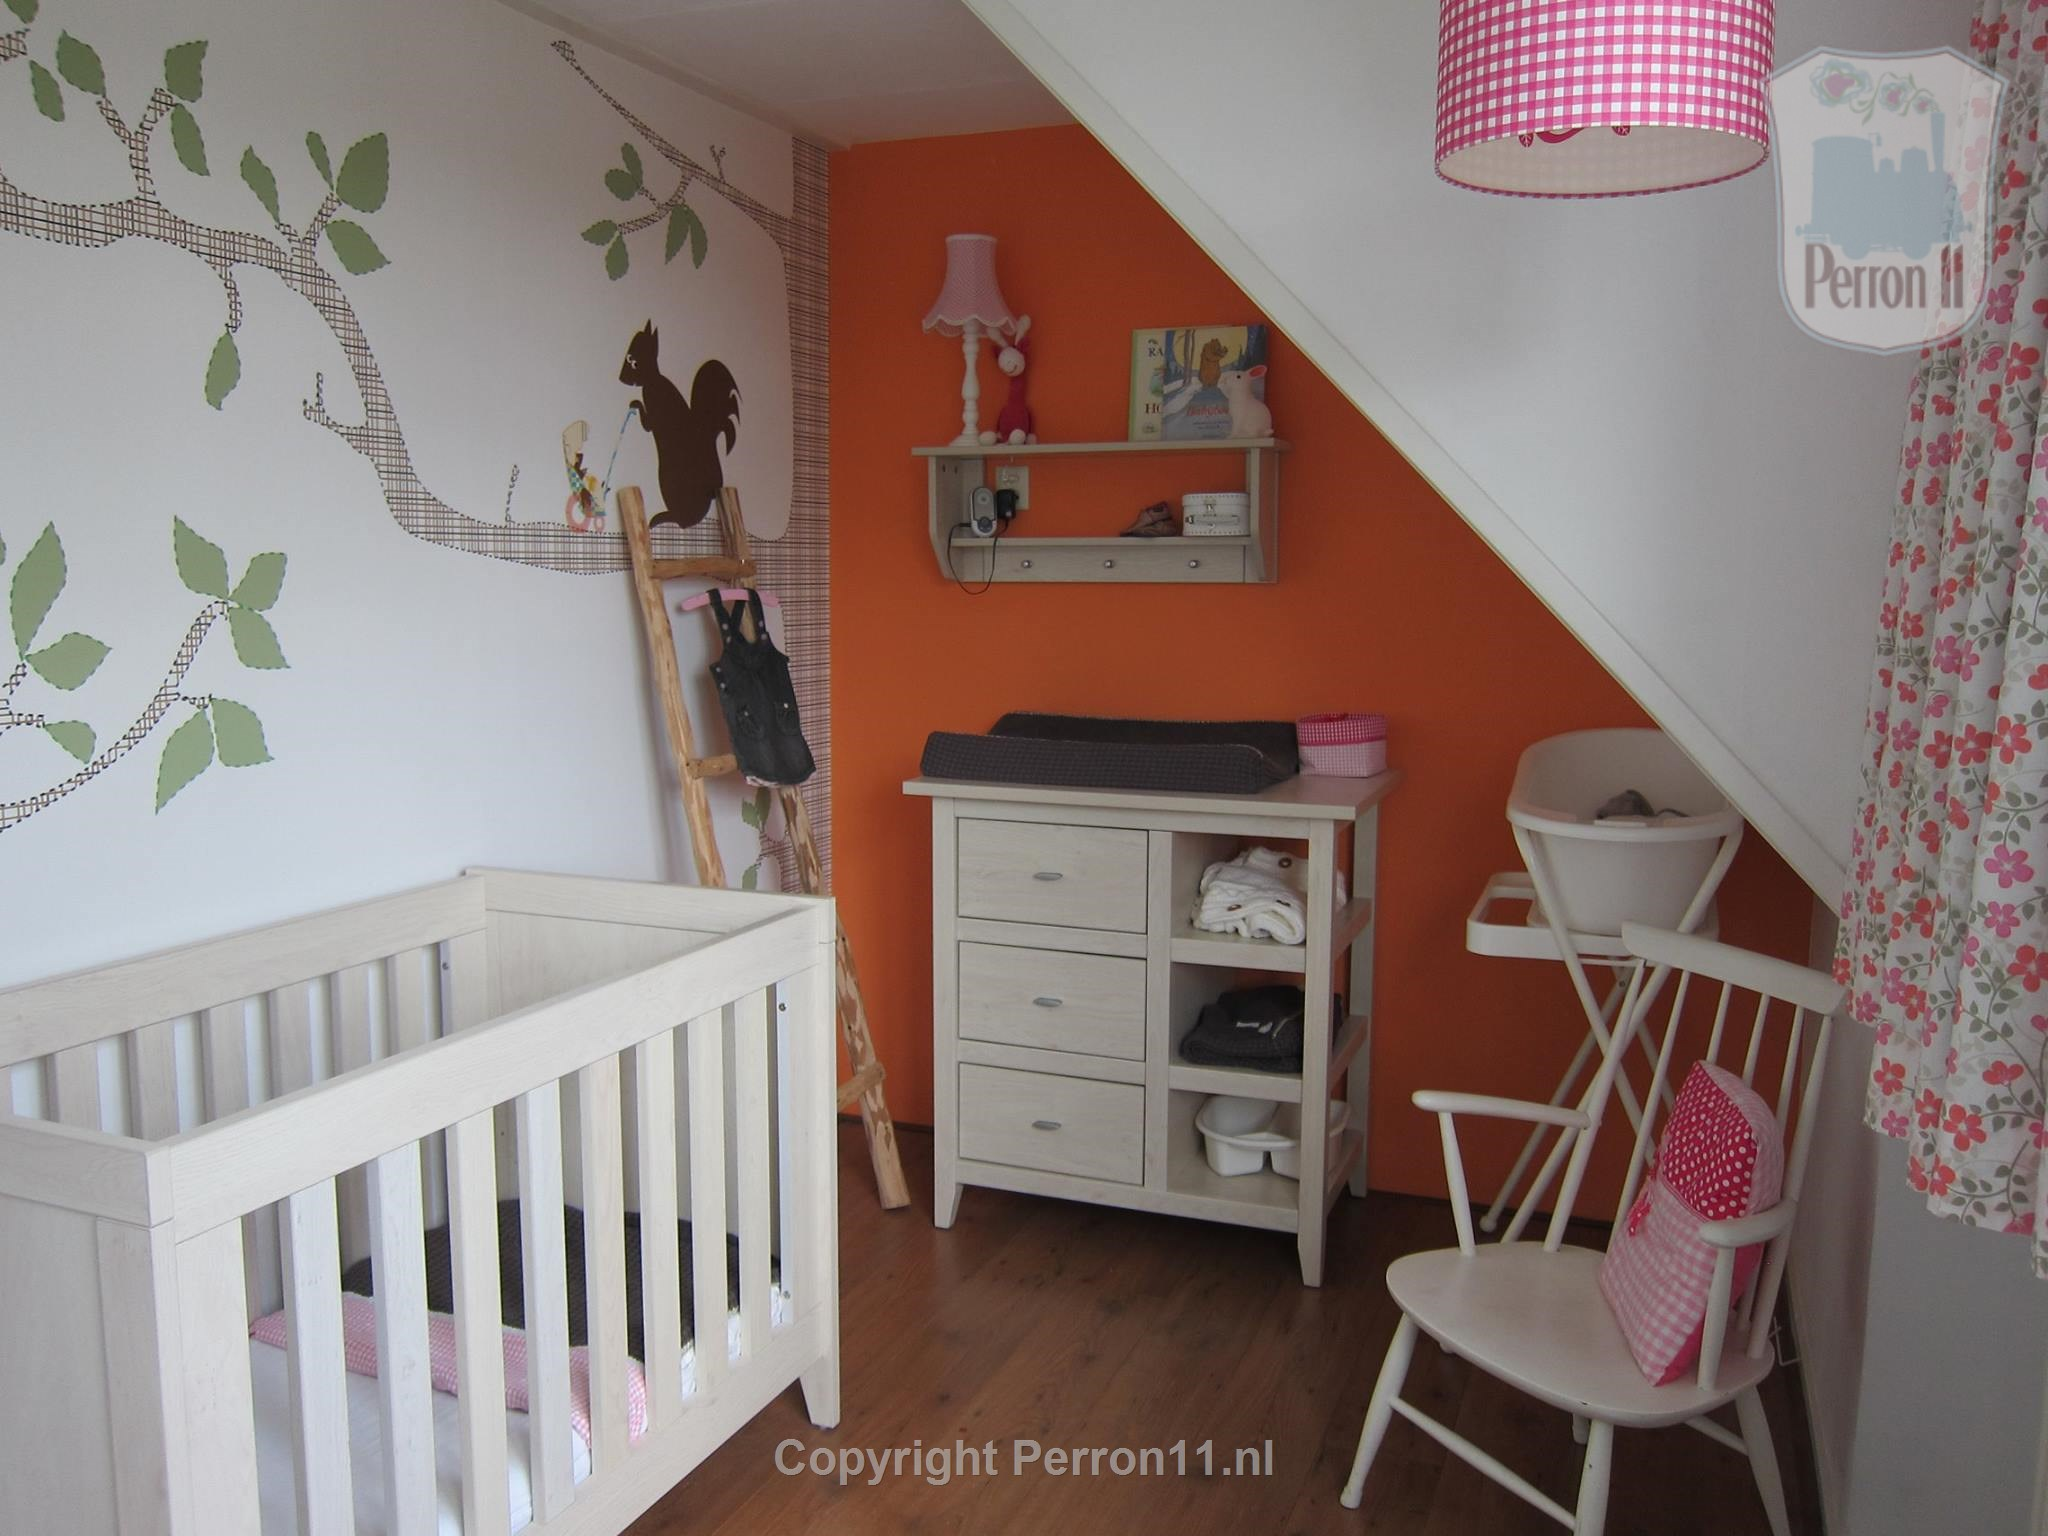 Babykamer with poster wallpaper Eekhuis of Perron 11 and recess orange